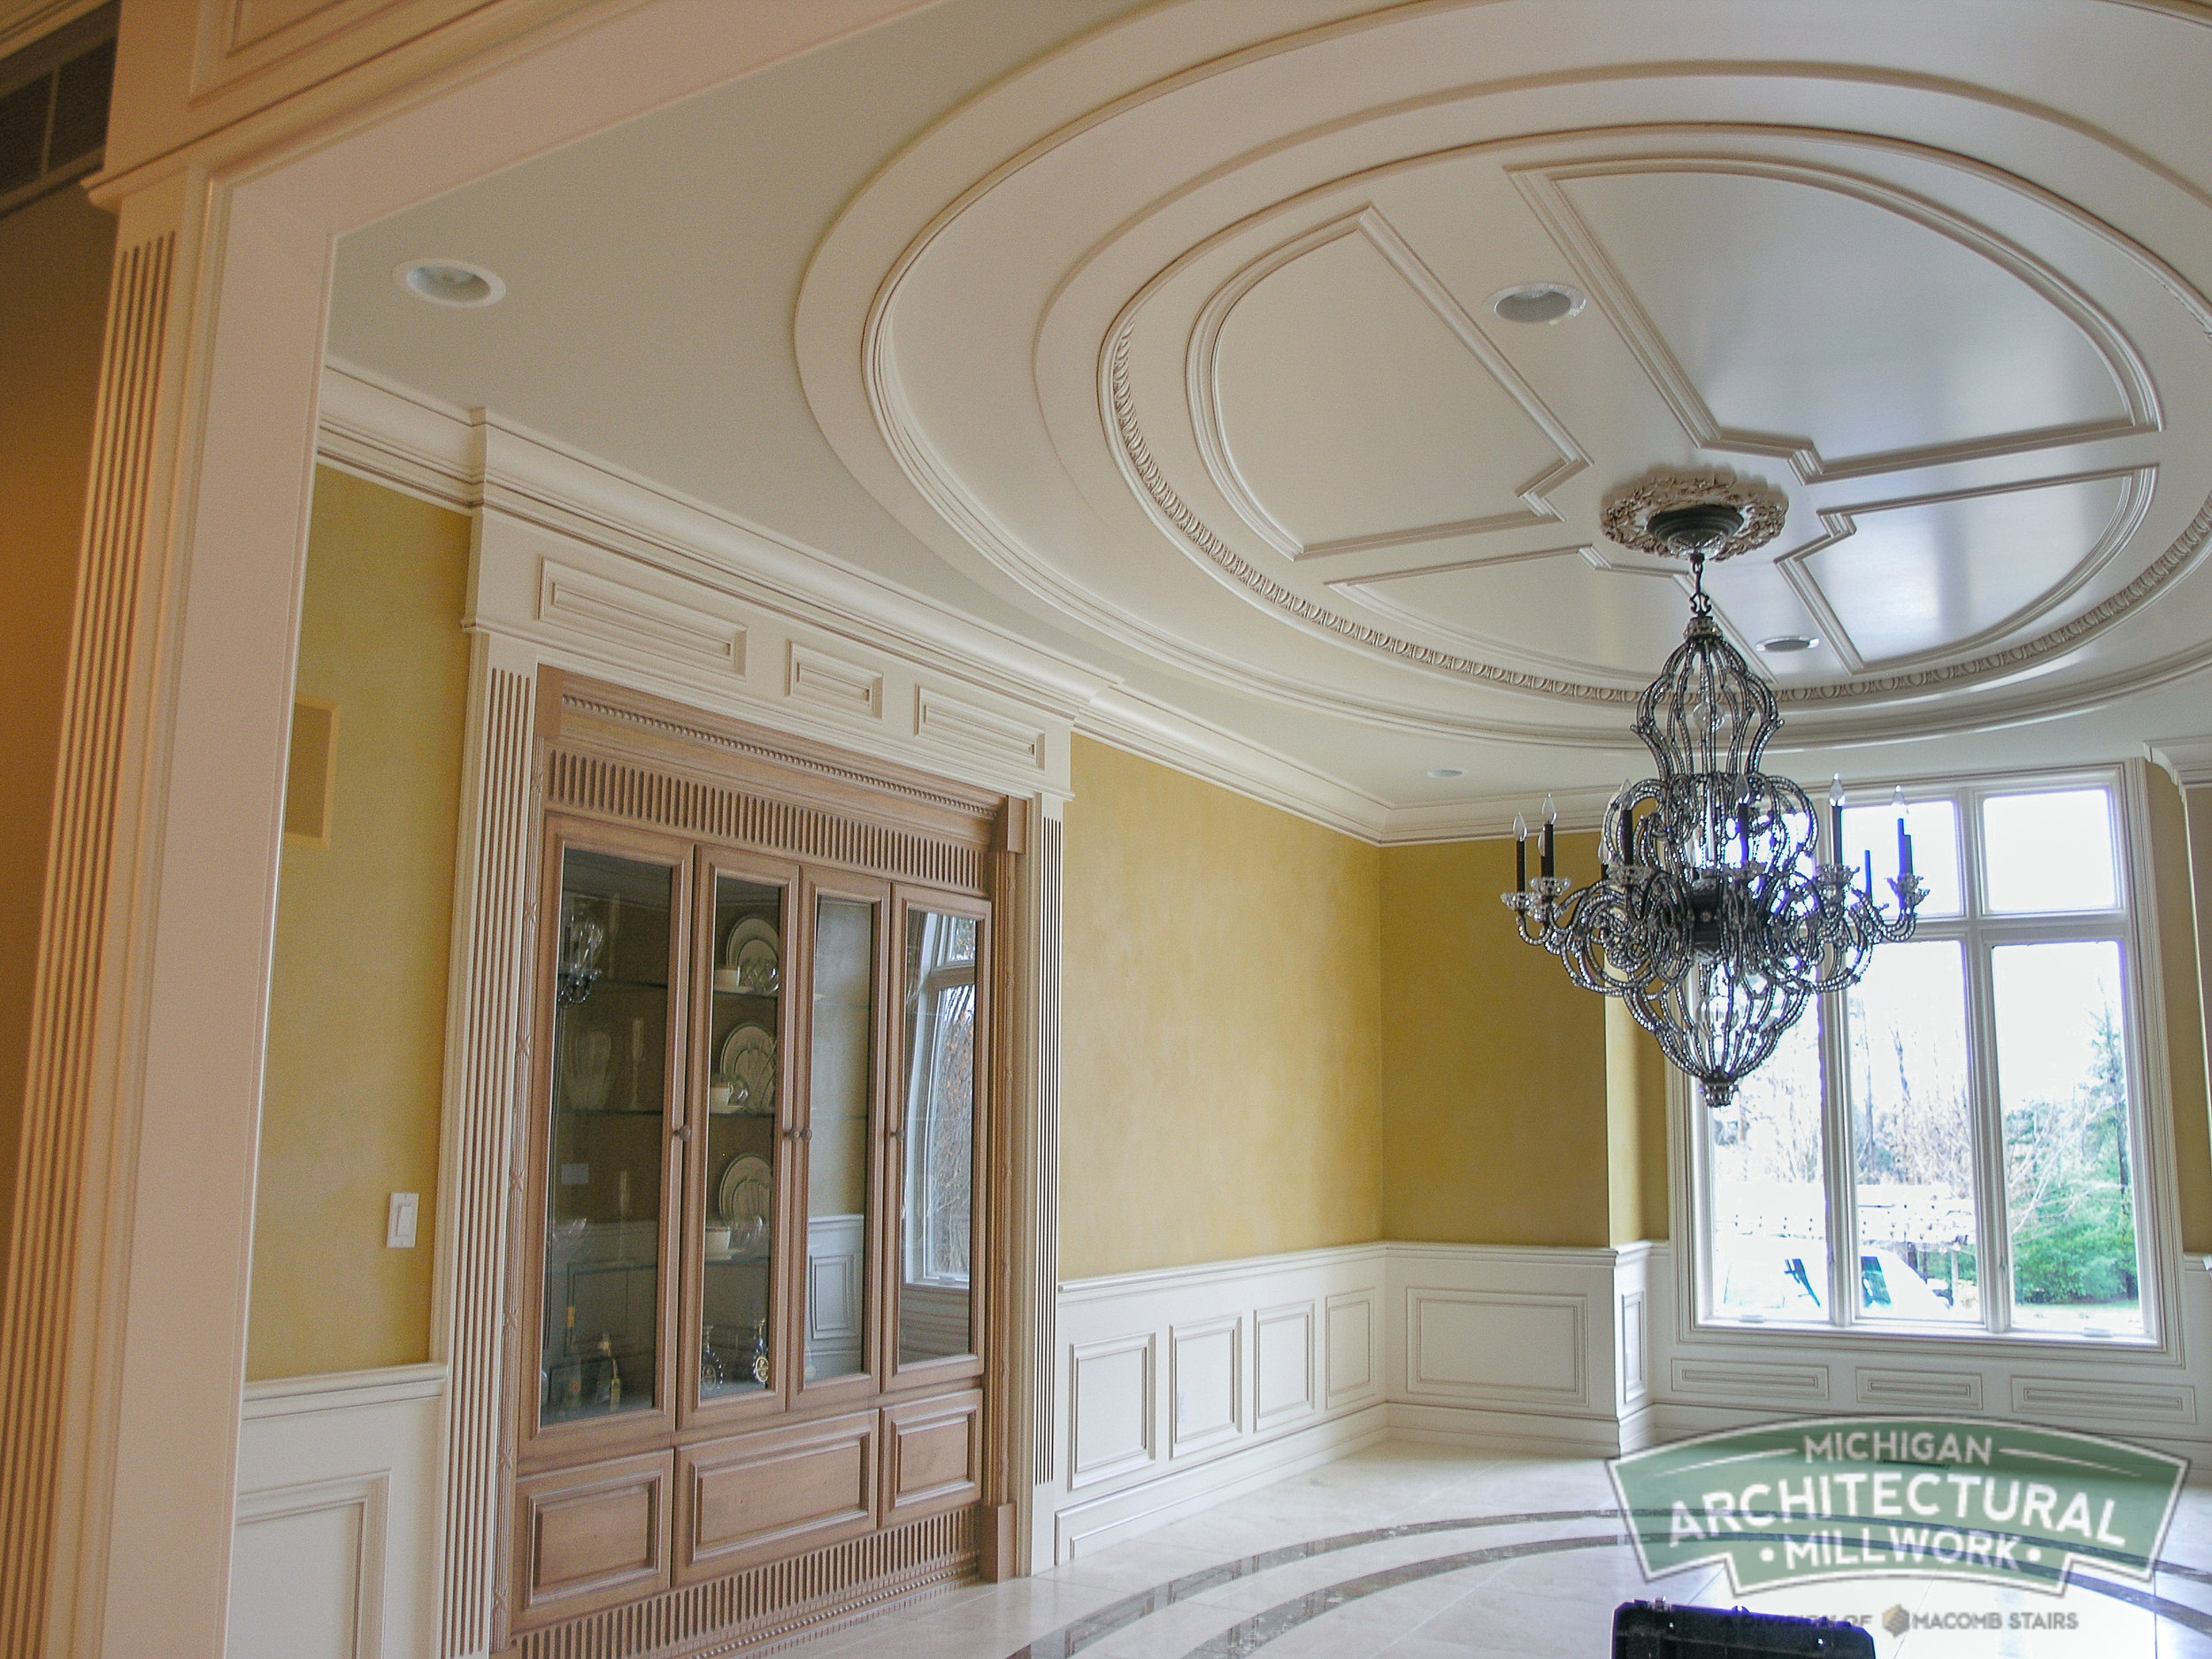 Michigan Architectural Millwork- Moulding and Millwork Photo-90.jpg